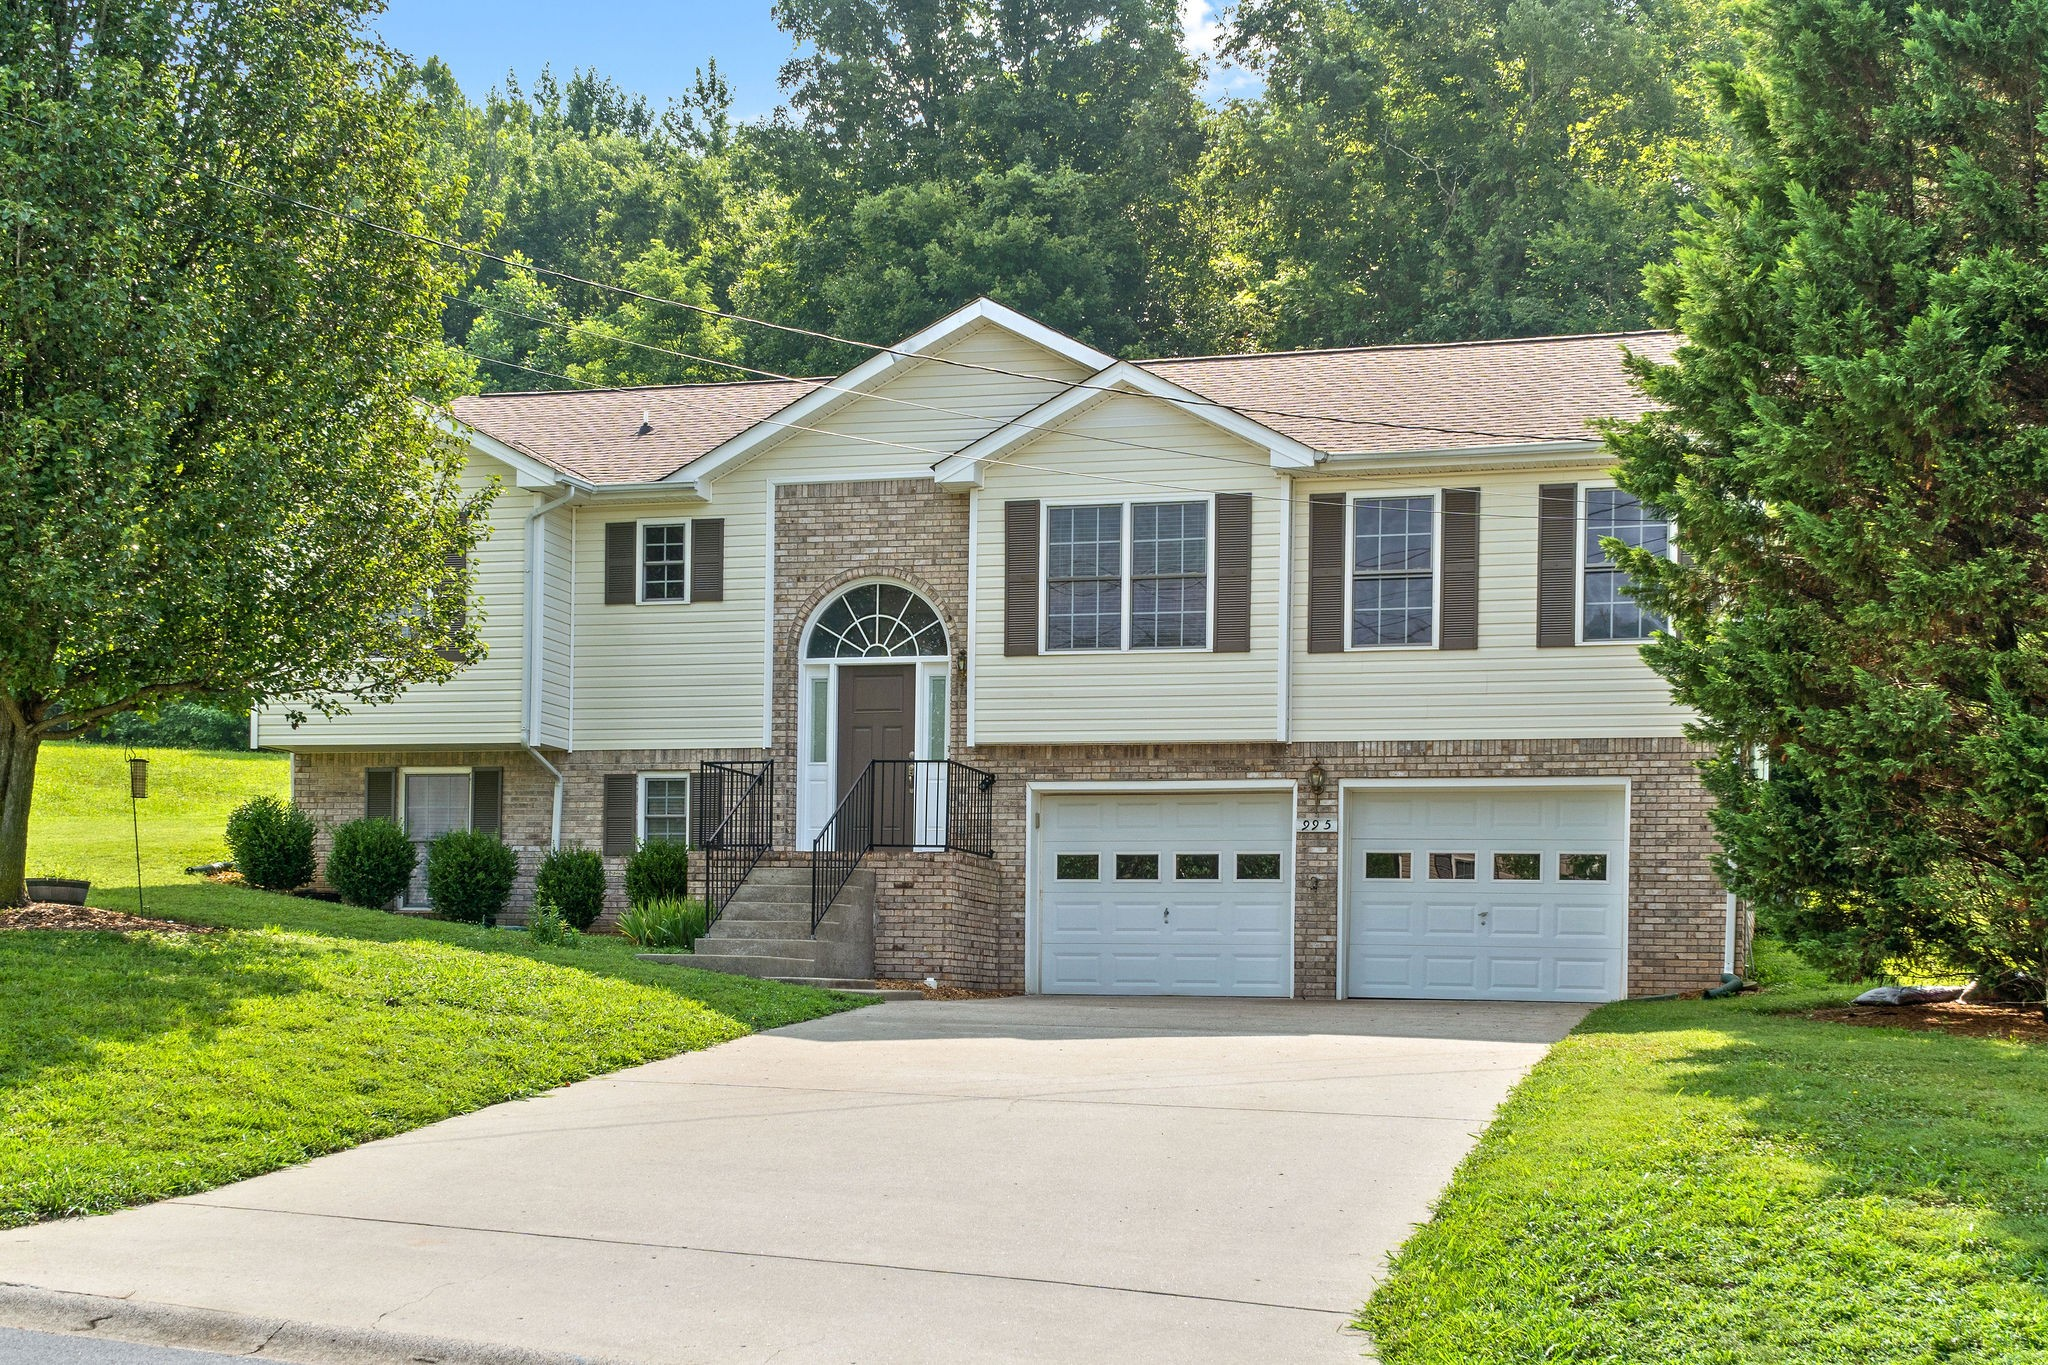 BACK TO ACTIVE ~ WOW!!! You do not want to miss this Beautiful Home located in Sugartree Subdivision. Close to Ft. Campbell, Shopping, Restaurants! This home boasts brand new paint on the main level, BRAND NEW stainless steel appliances. Hot water heater 6/21, Roof 2015, HVAC 2017! Every room has walk in closets. This home has been meticulously taken care of and is ready for it to be YOUR NEXT HOME!